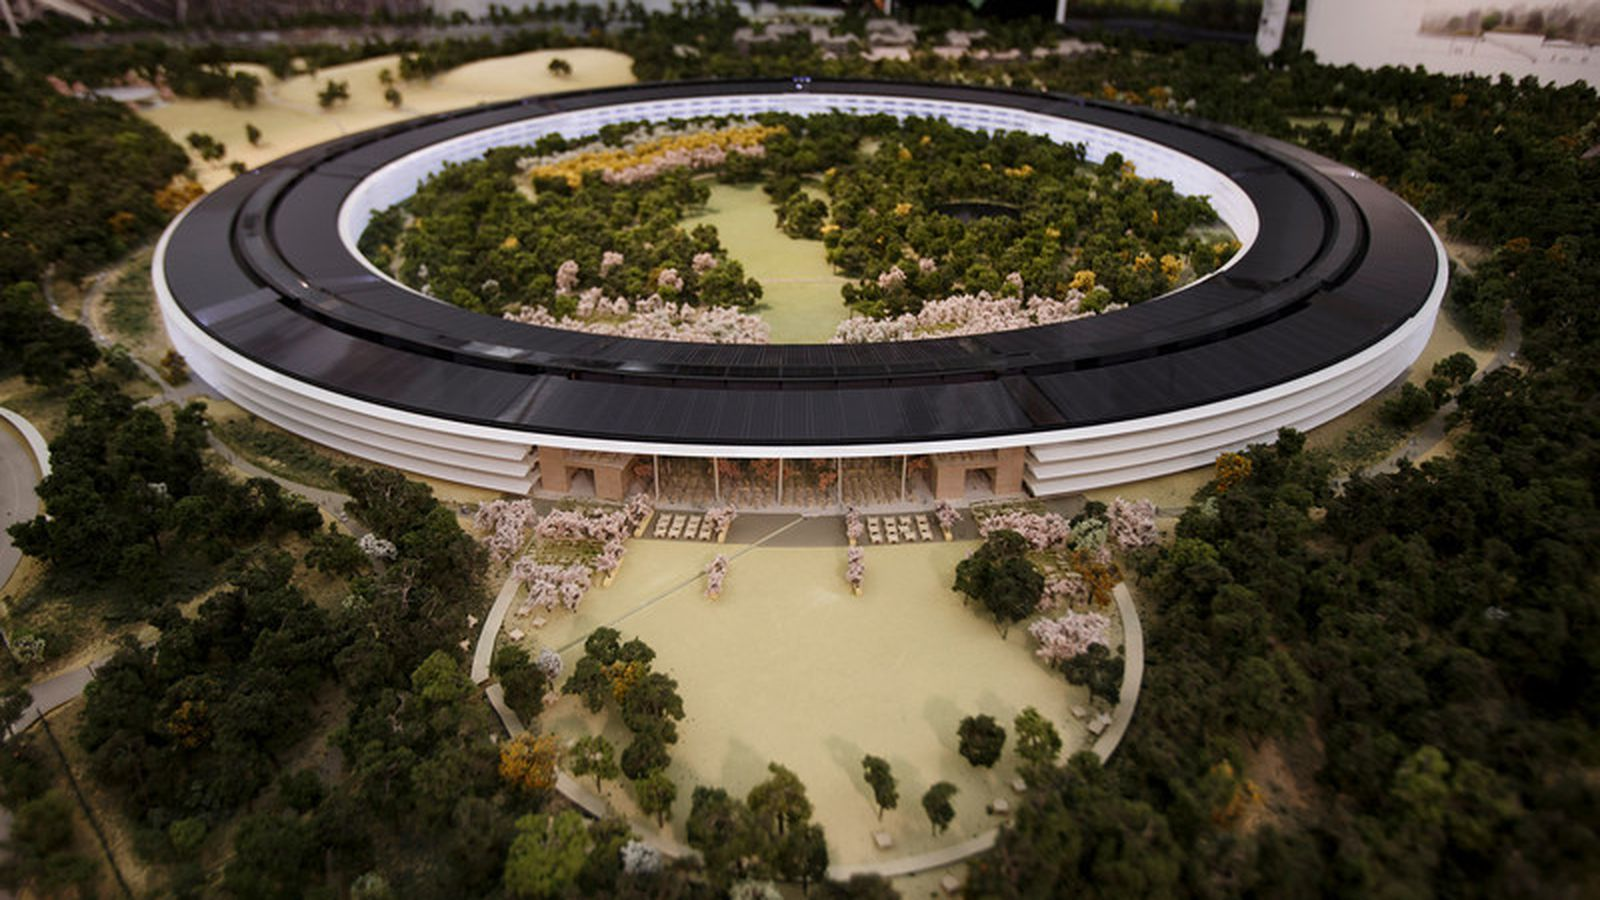 Apple S Spaceship Campus Shown To Scale In Gorgeous